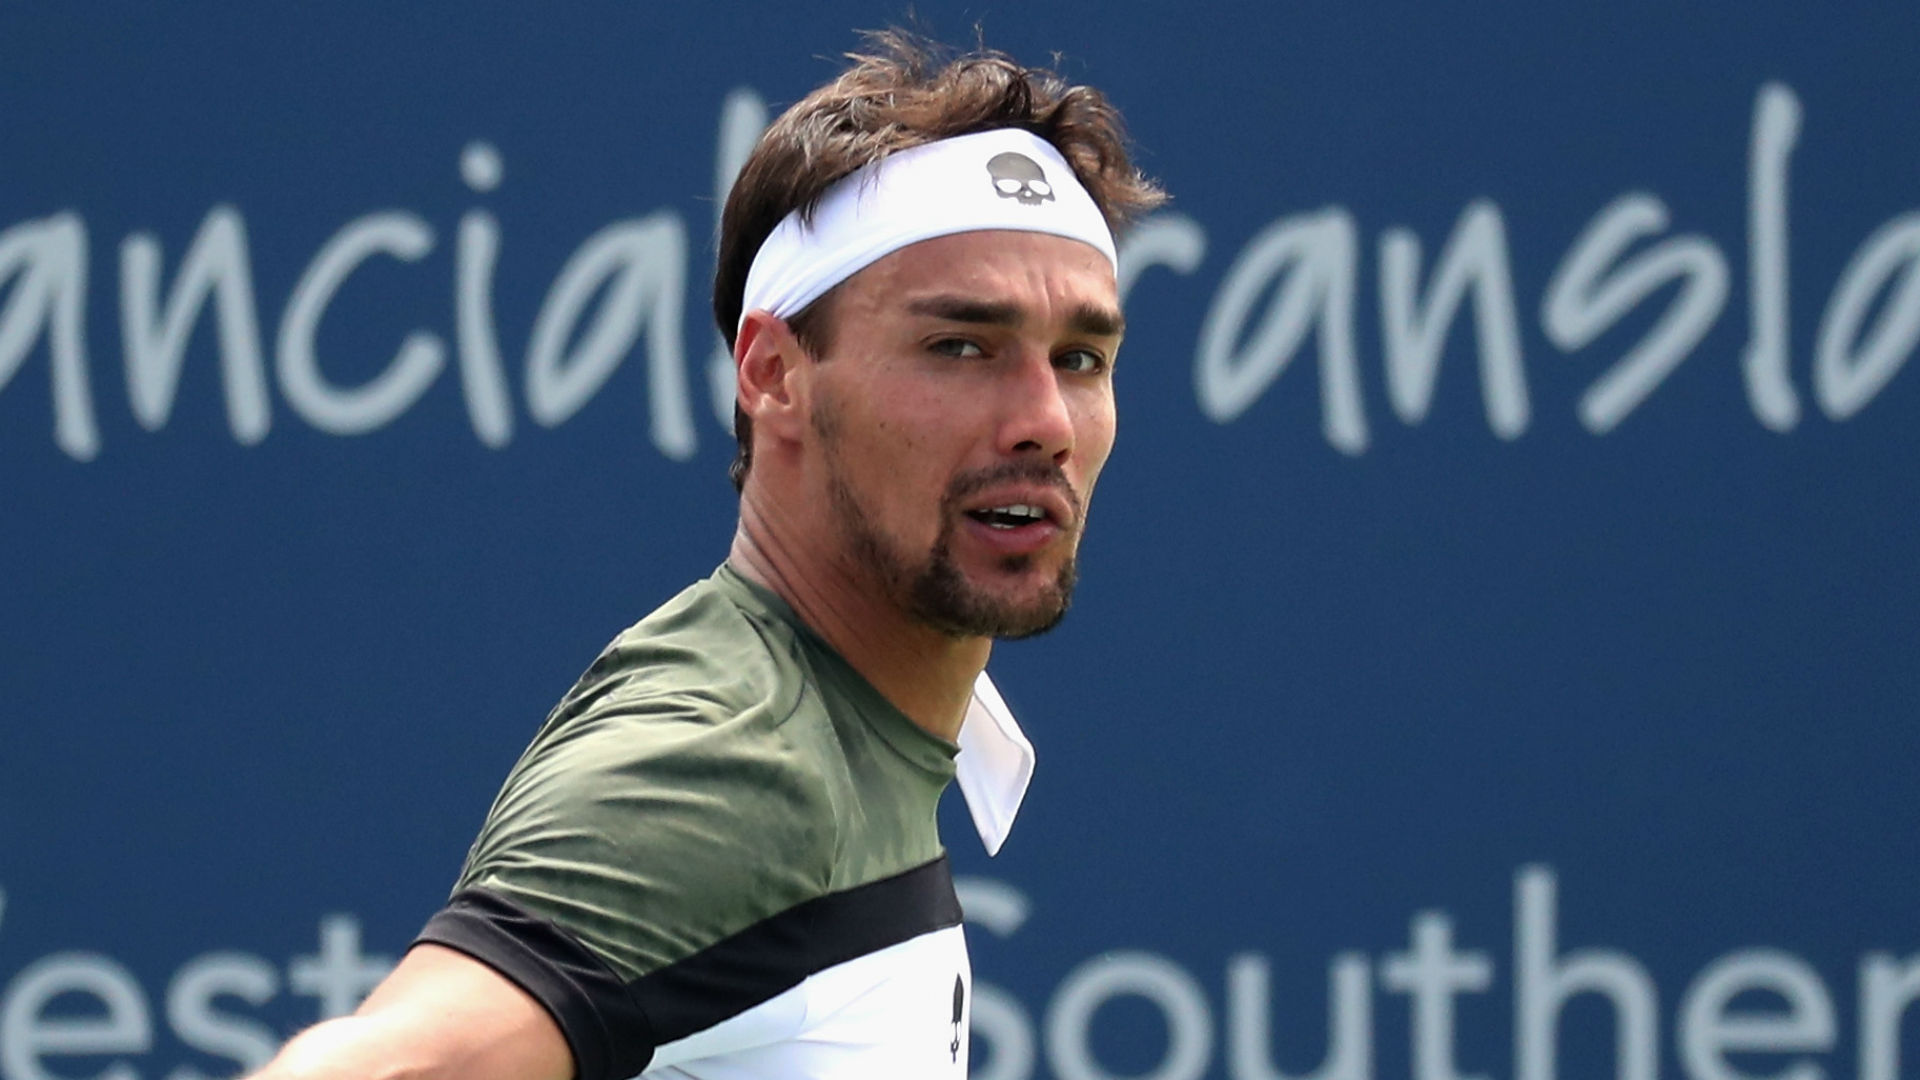 Fognini suspended from US Open